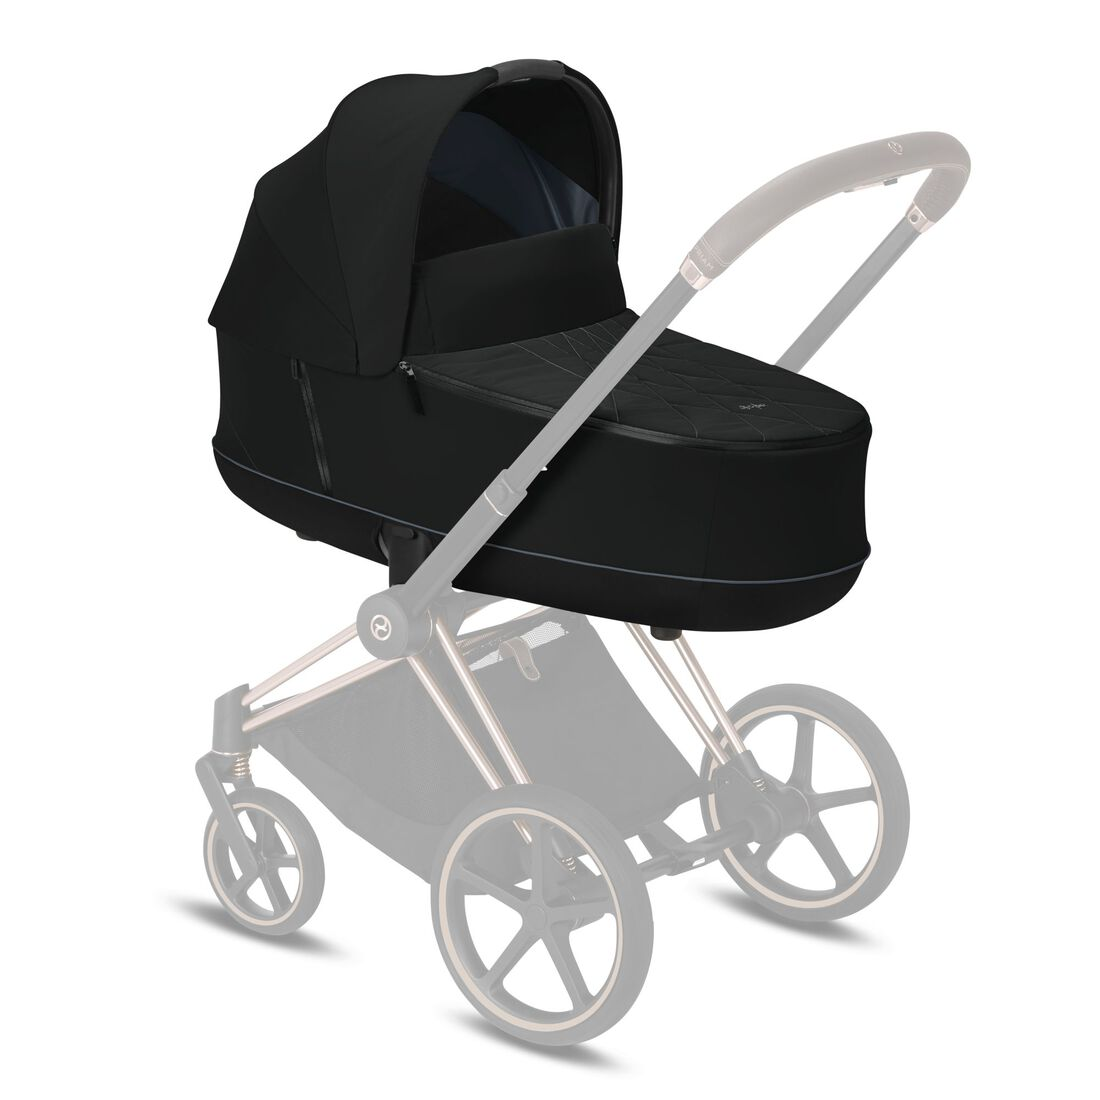 CYBEX Configure e-Priam Set: Frame, Lux Carry Cot, Cloud Z i-Size, Seat Pack in  large image number 6